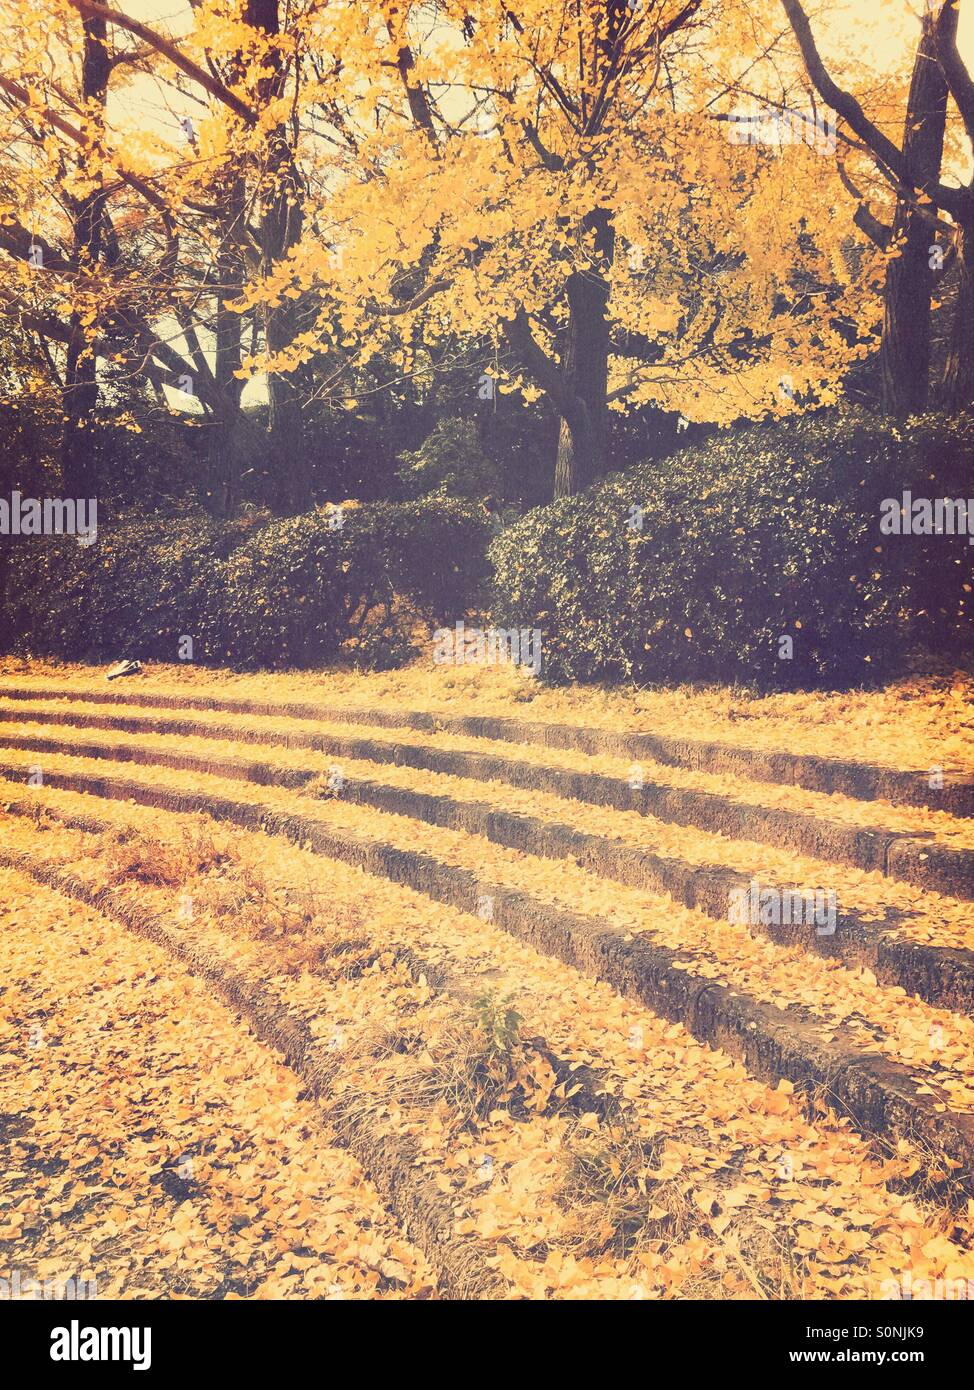 Outdoor stairs at park covered with yellow leaves fallen from Gingko trees. - Stock Image